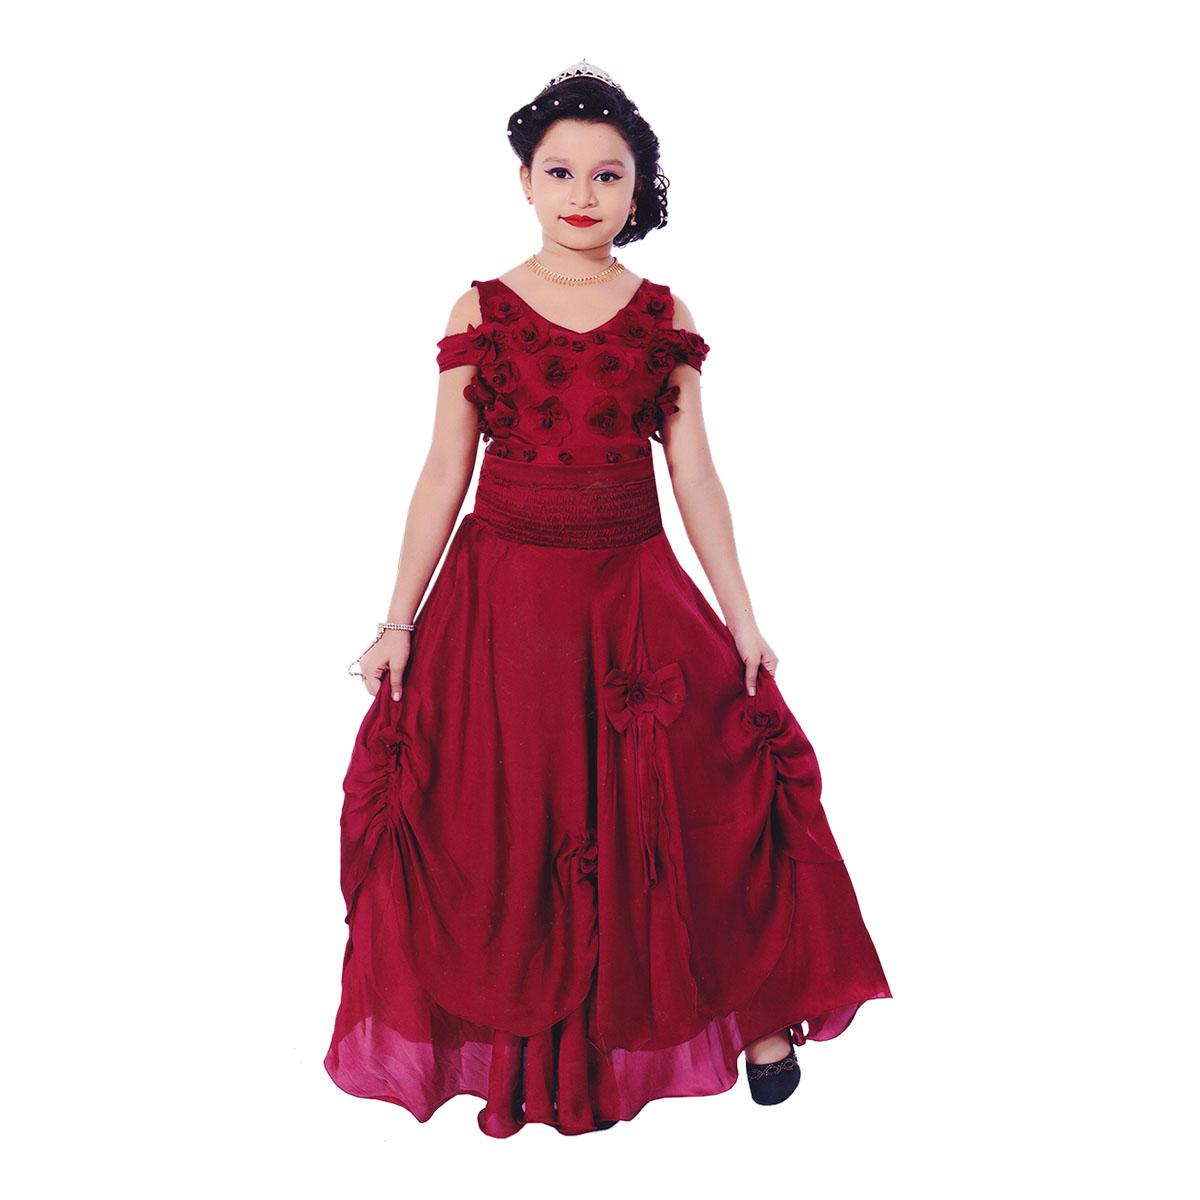 fda6eb12942 Exquisite Short Sleeve Maroon Flower Girls Formal Wedding Dresses Kids